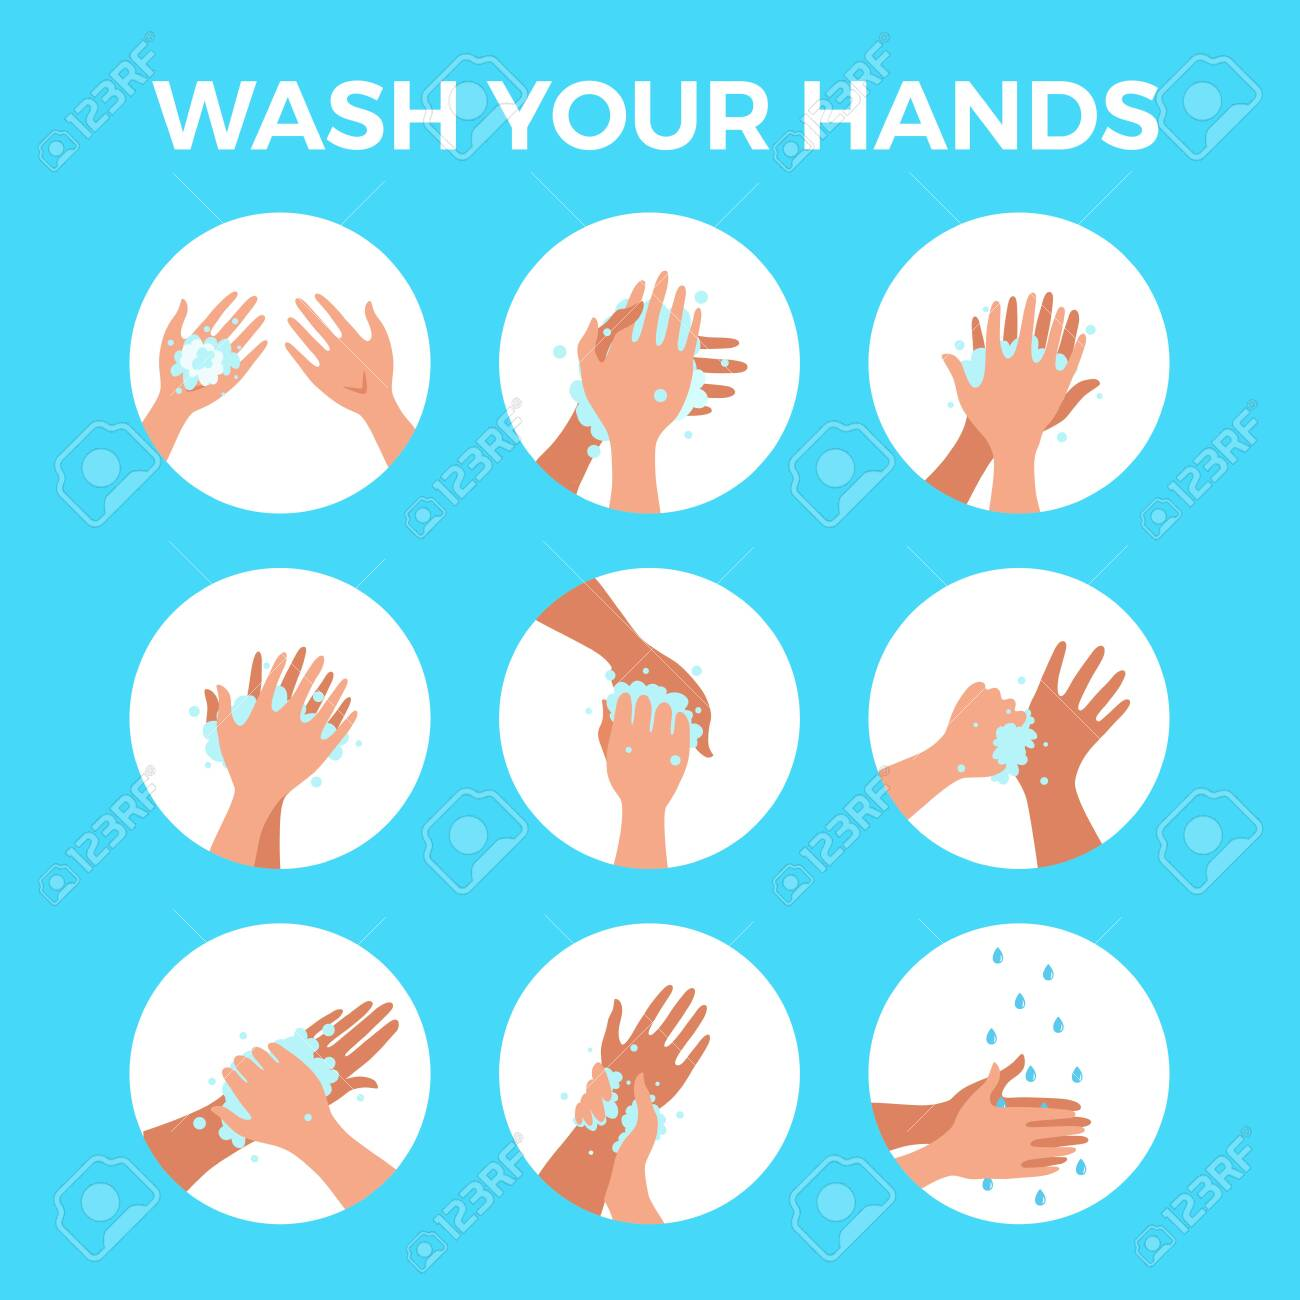 Washing hands with soap and water properly cartoon vector illustration. Flat medical care hygiene personal skin cleaning procedure colorful concept. Virus prevention protection steps design template - 142949124